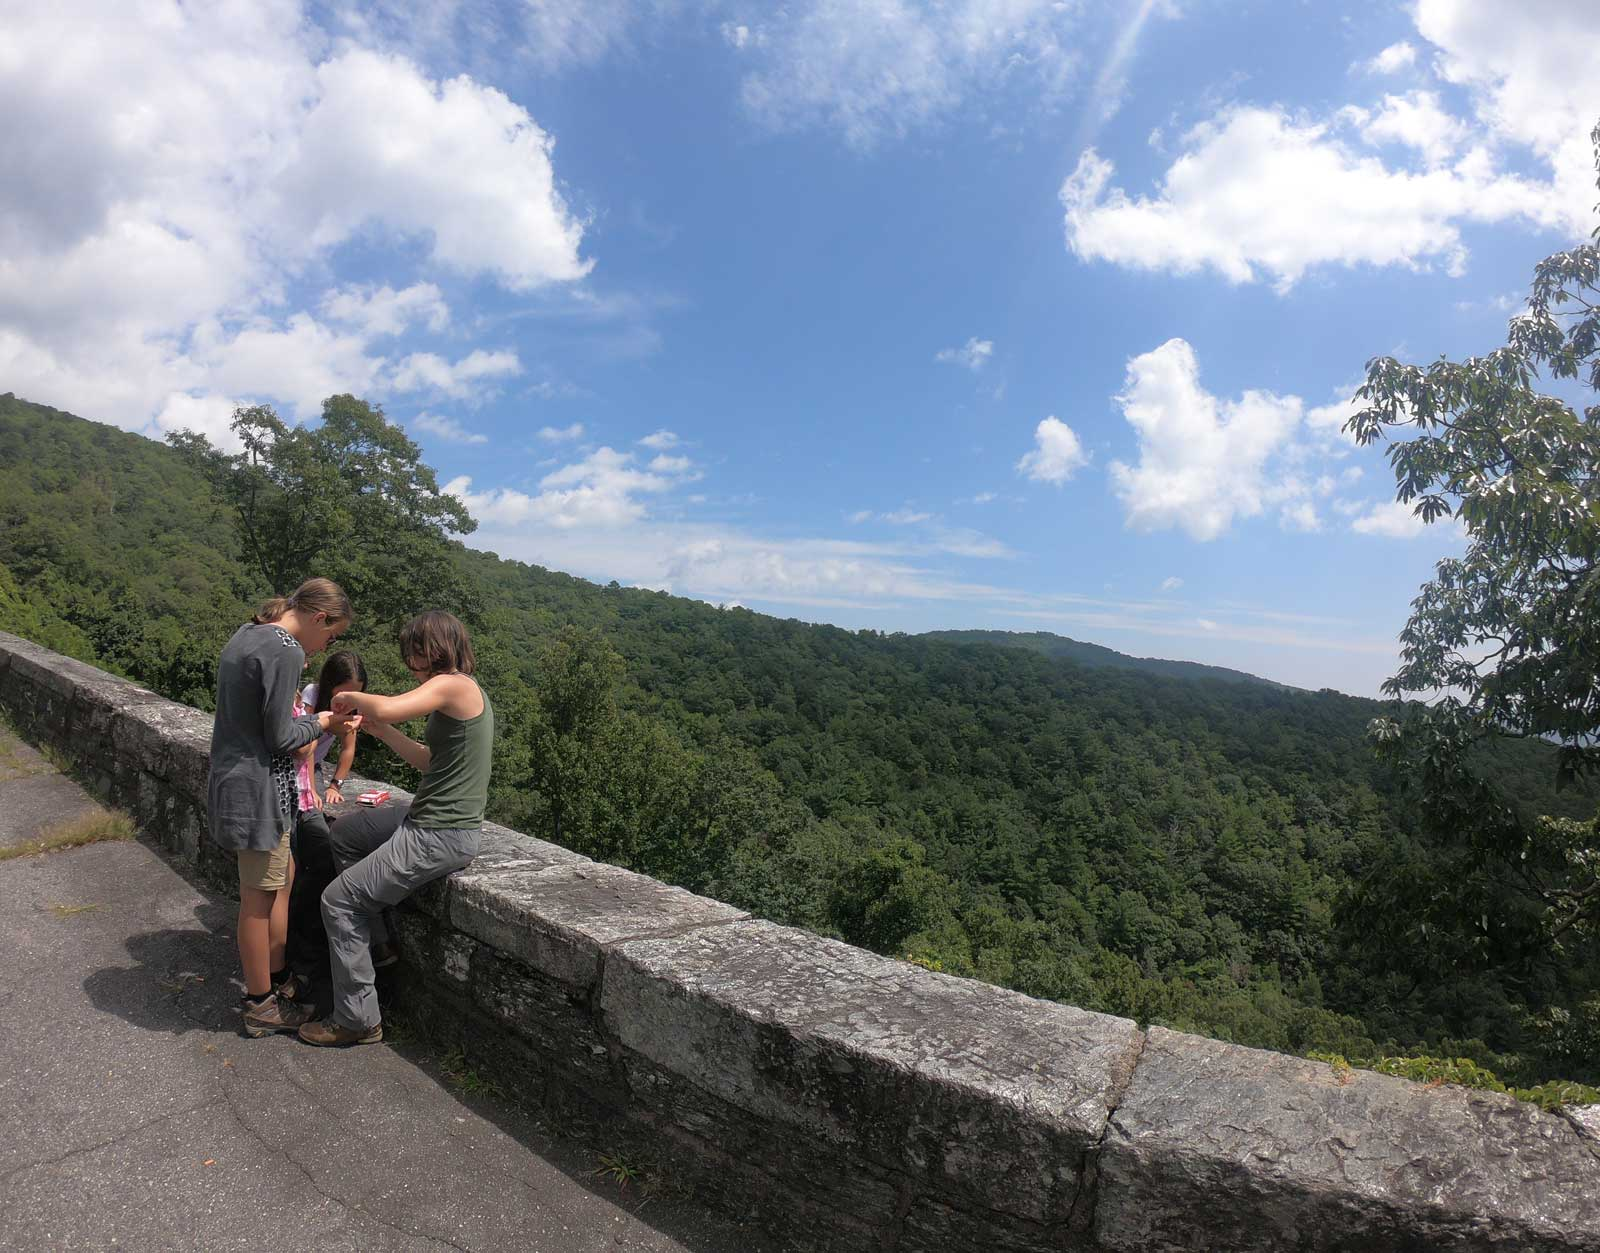 Photo of three girls at an overlook on the Blue Ridge Parkway near Black Mountain Campground, North Carolina